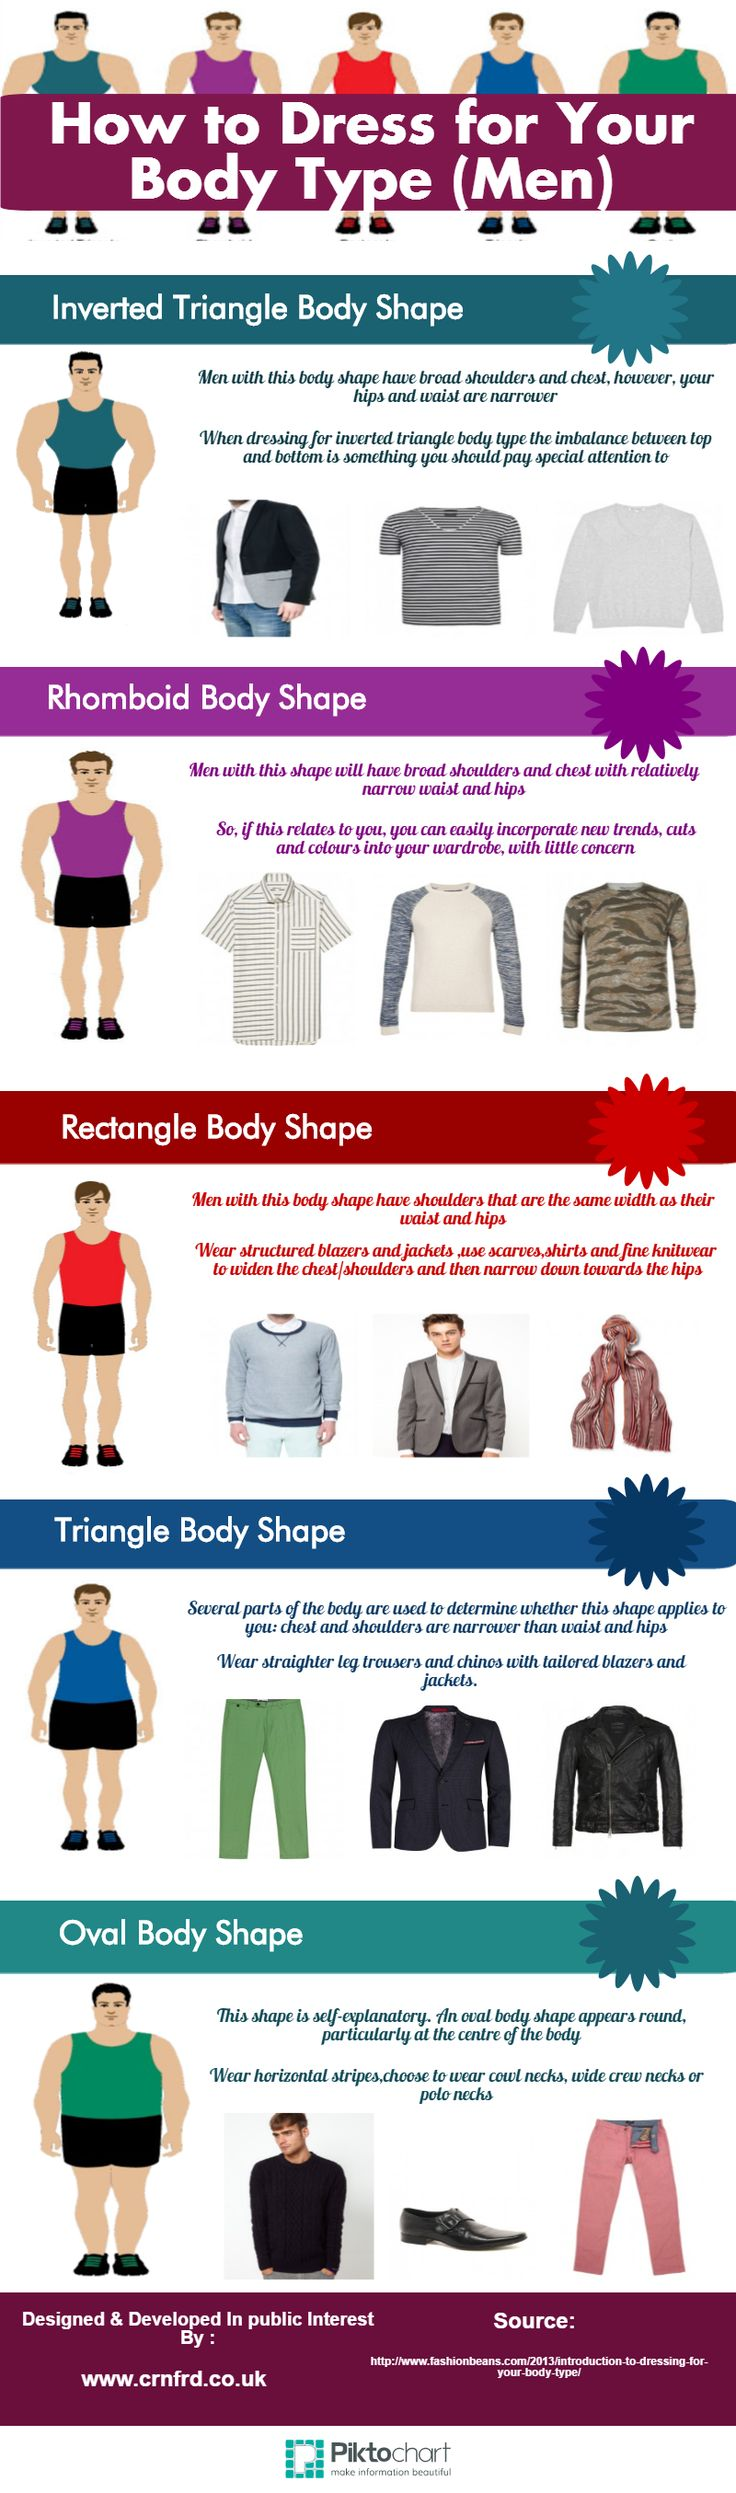 How to Dress for Your Body Type (Men) | Visual.ly